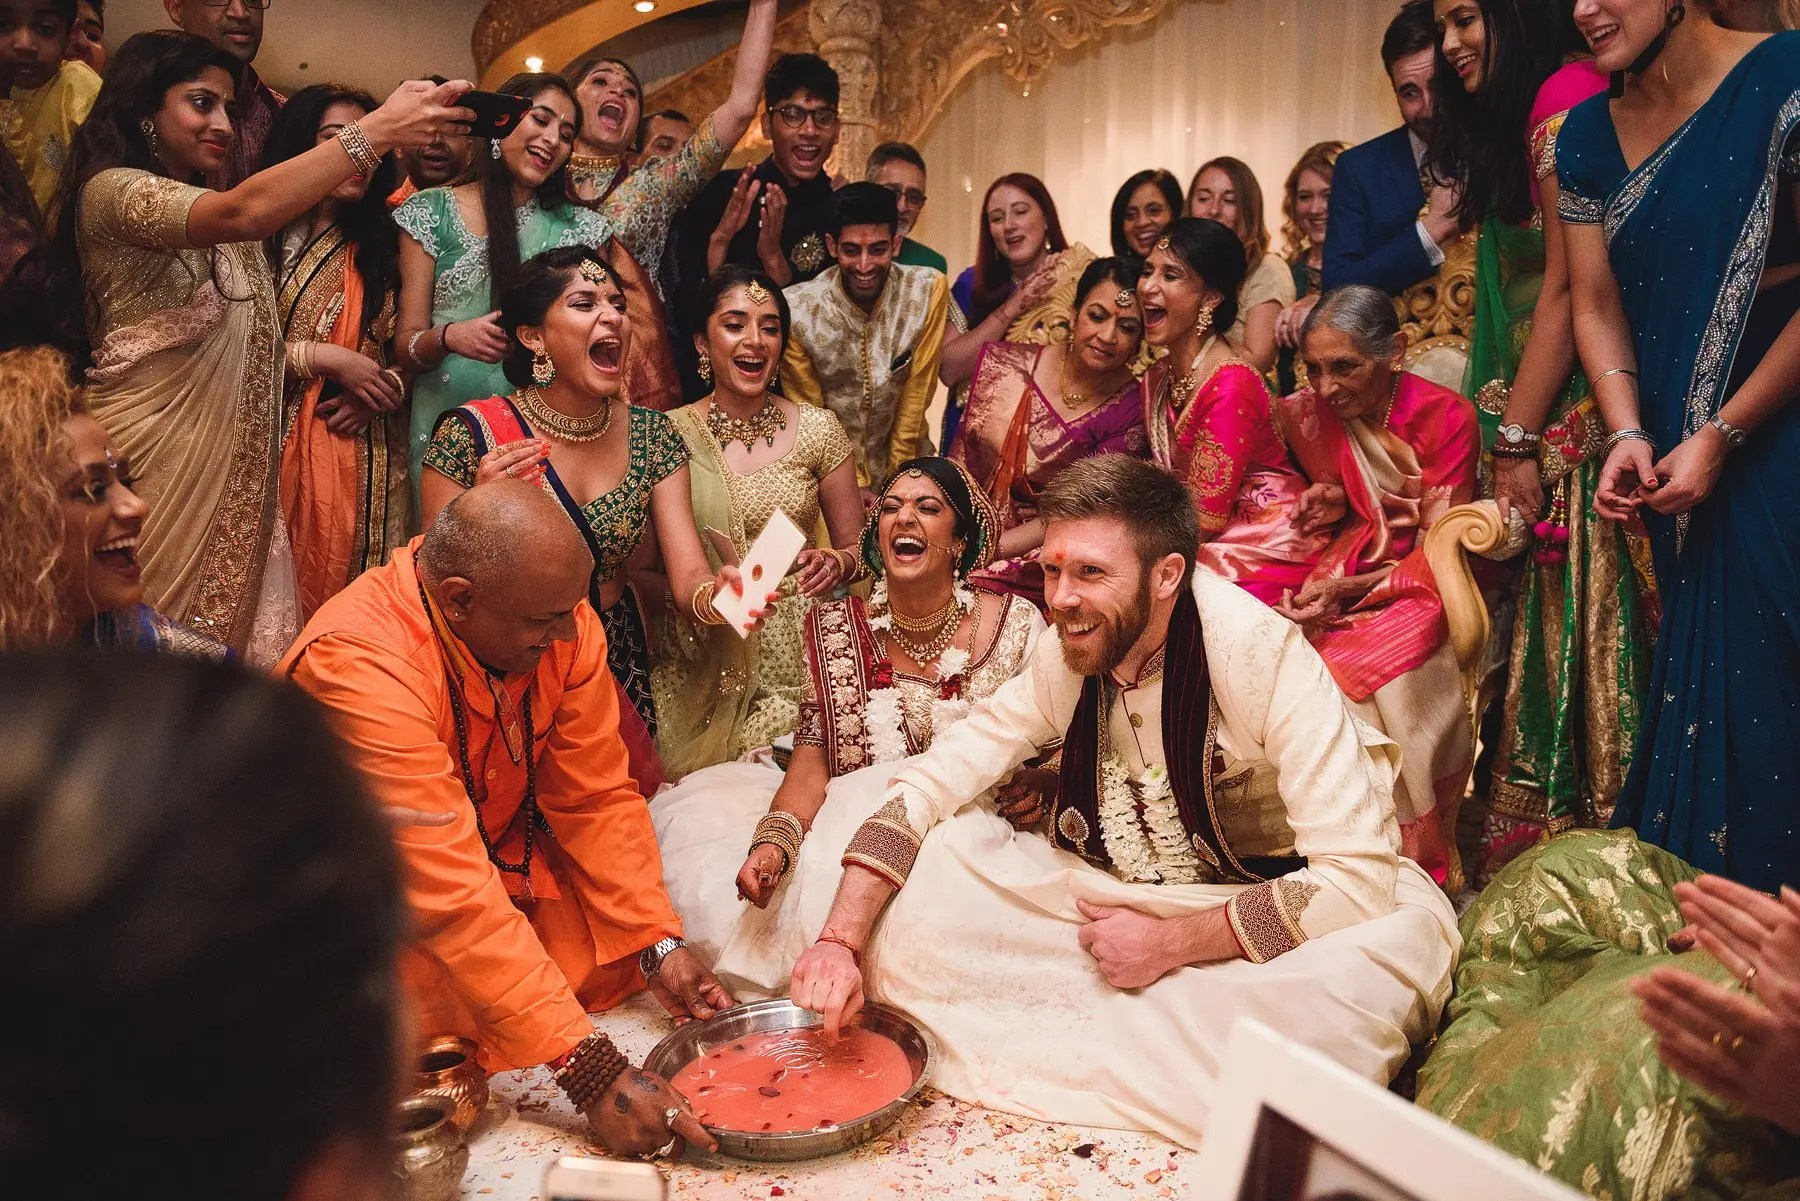 games under the mandap at an indian wedding ceremony